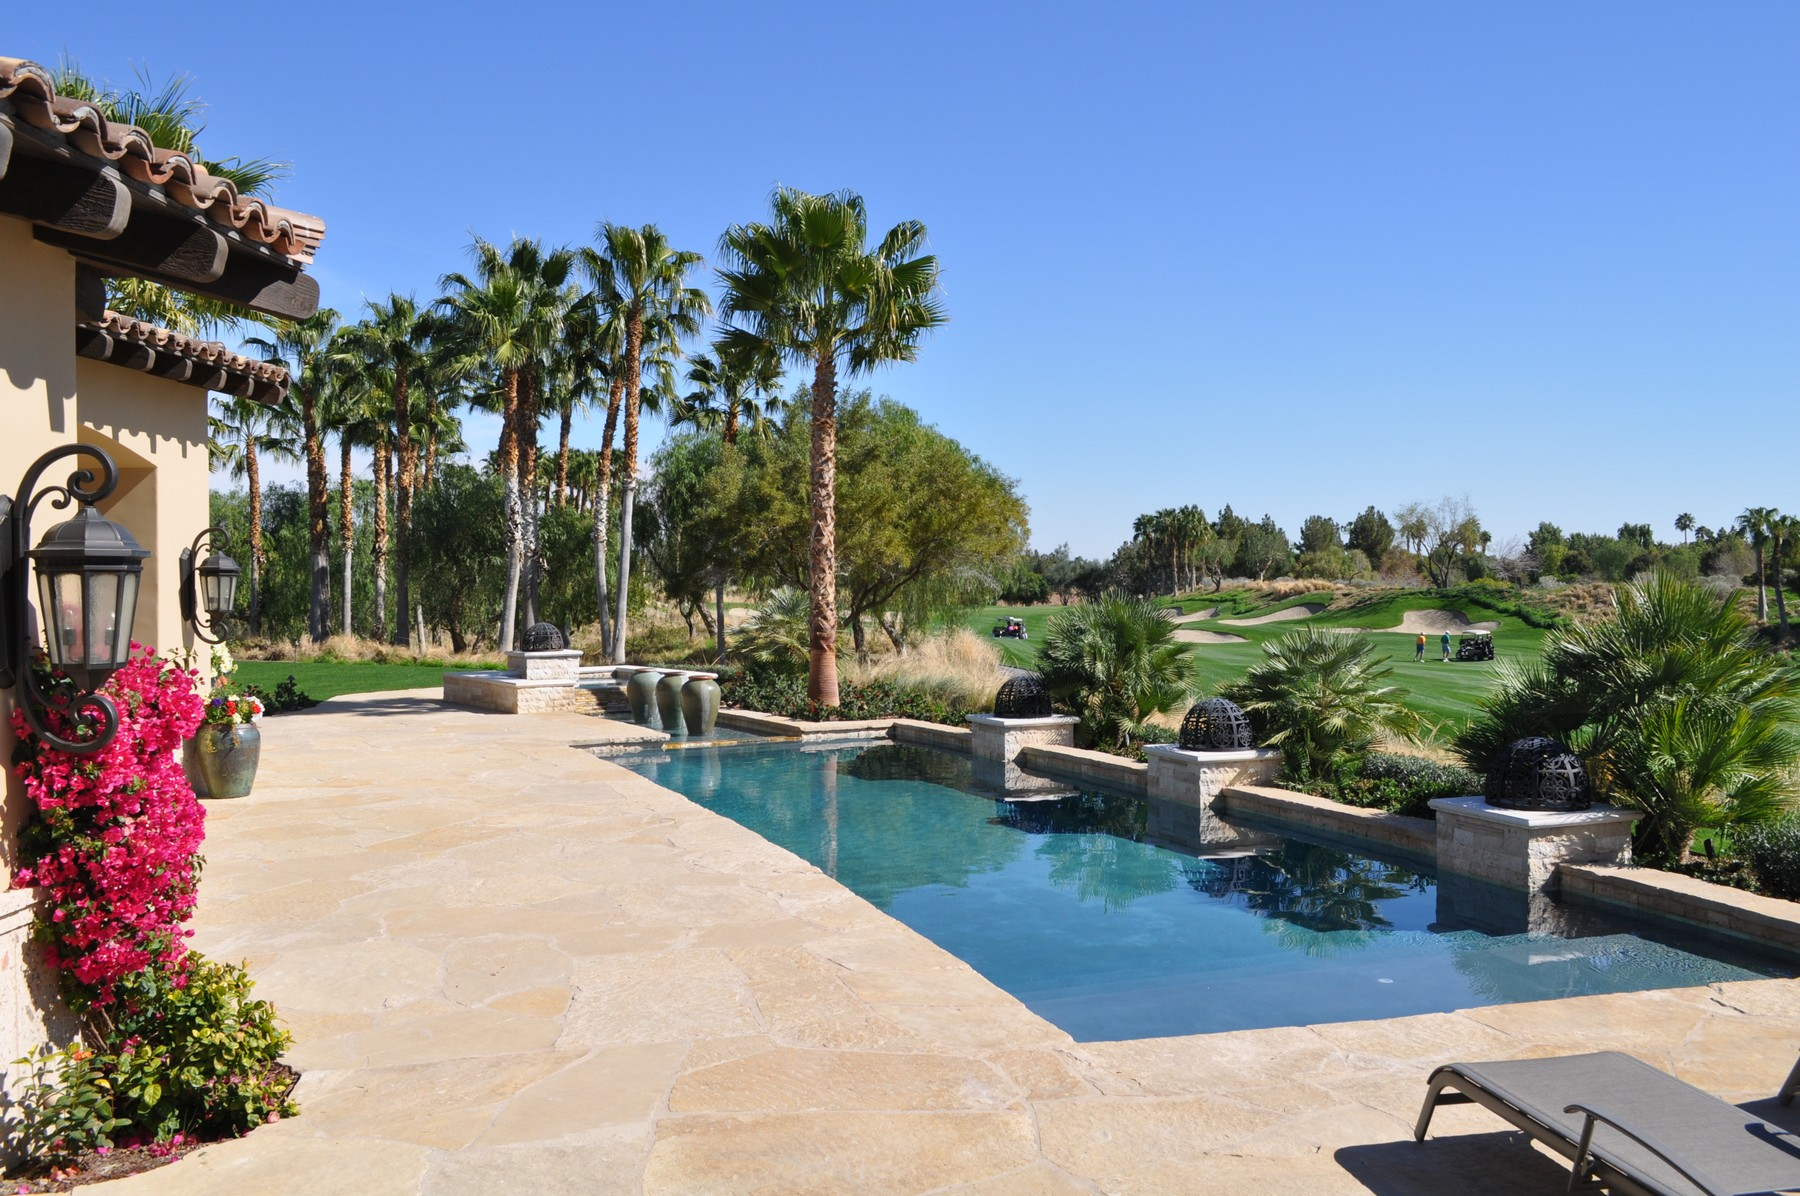 Single Family Home for Sale at 53824 Via Bellagio La Quinta, 92253 United States